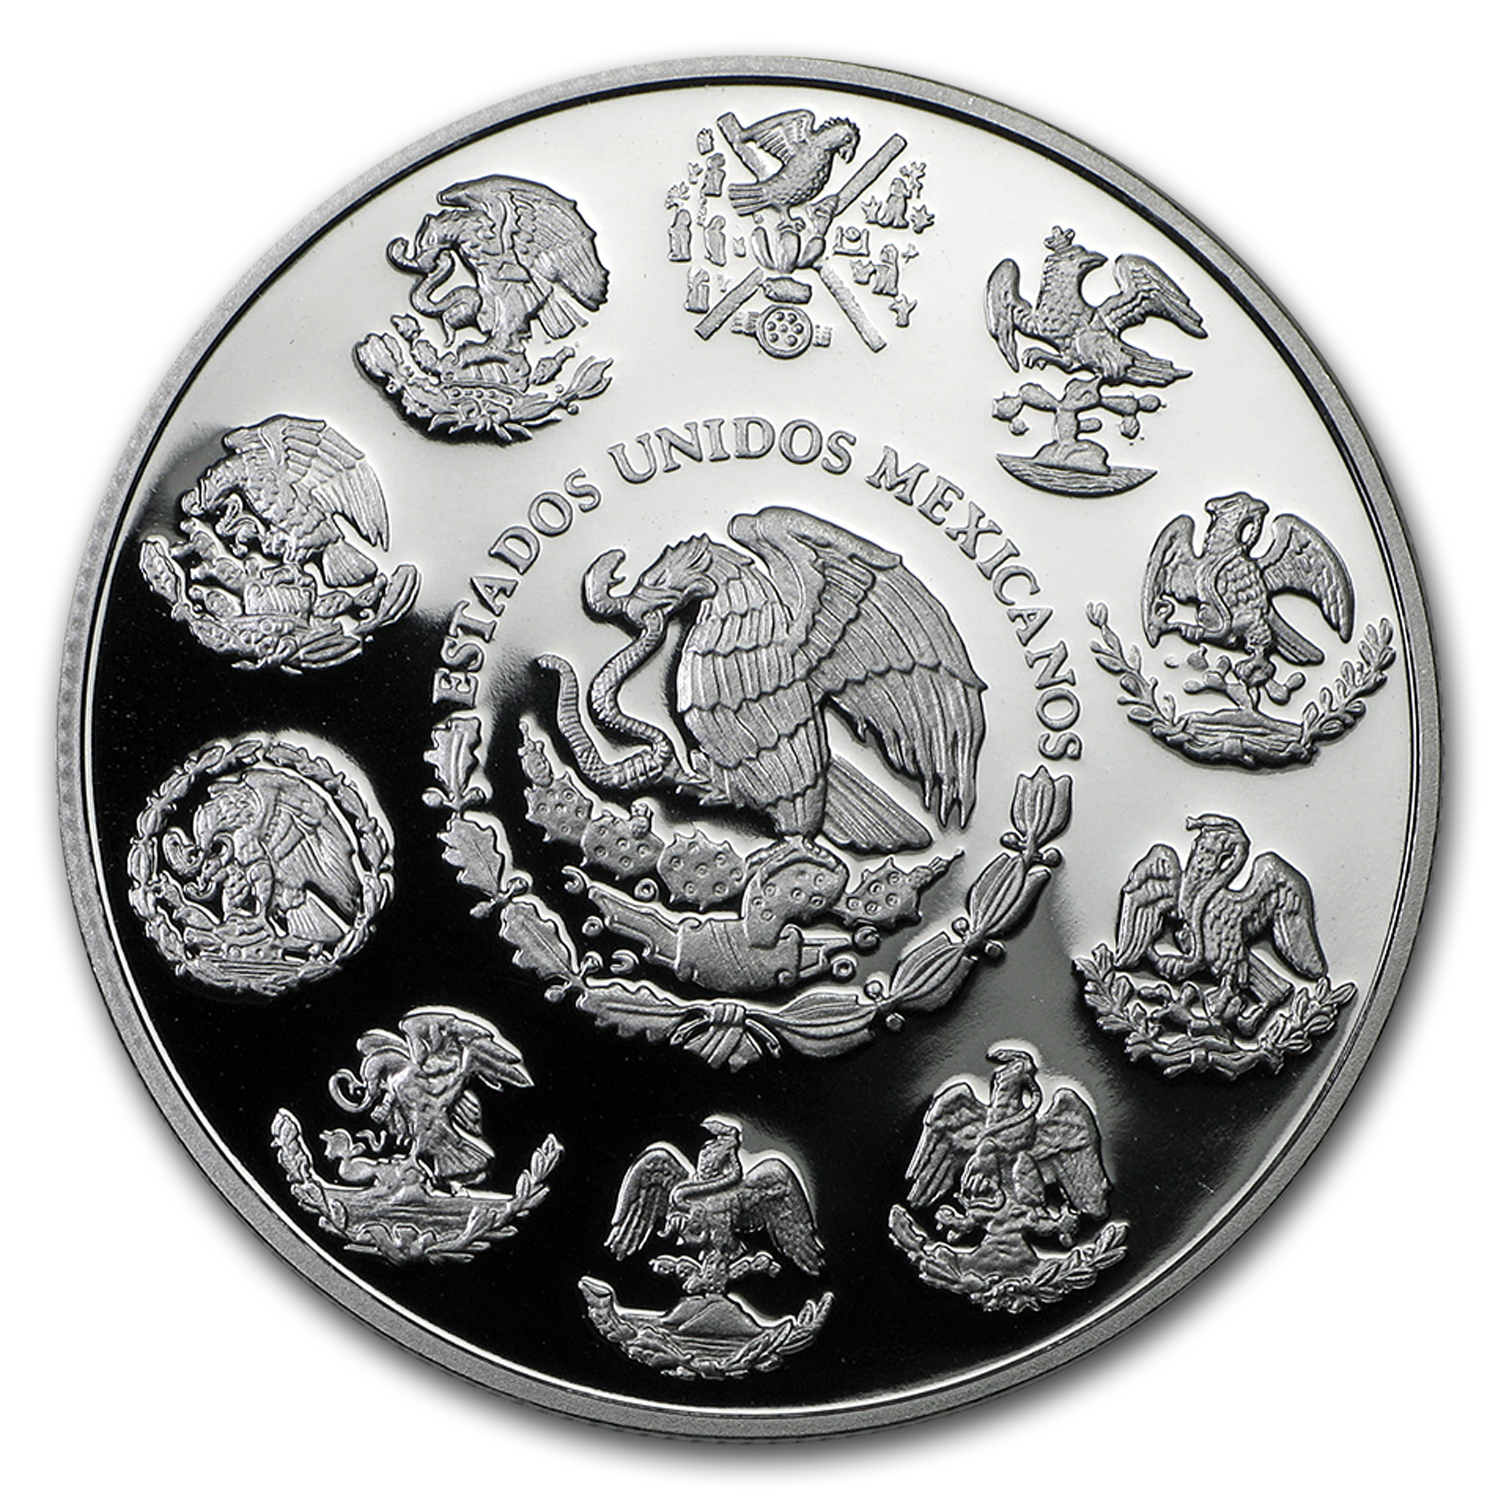 2010 1 oz Silver Mexican Libertad Proof (In Capsule)